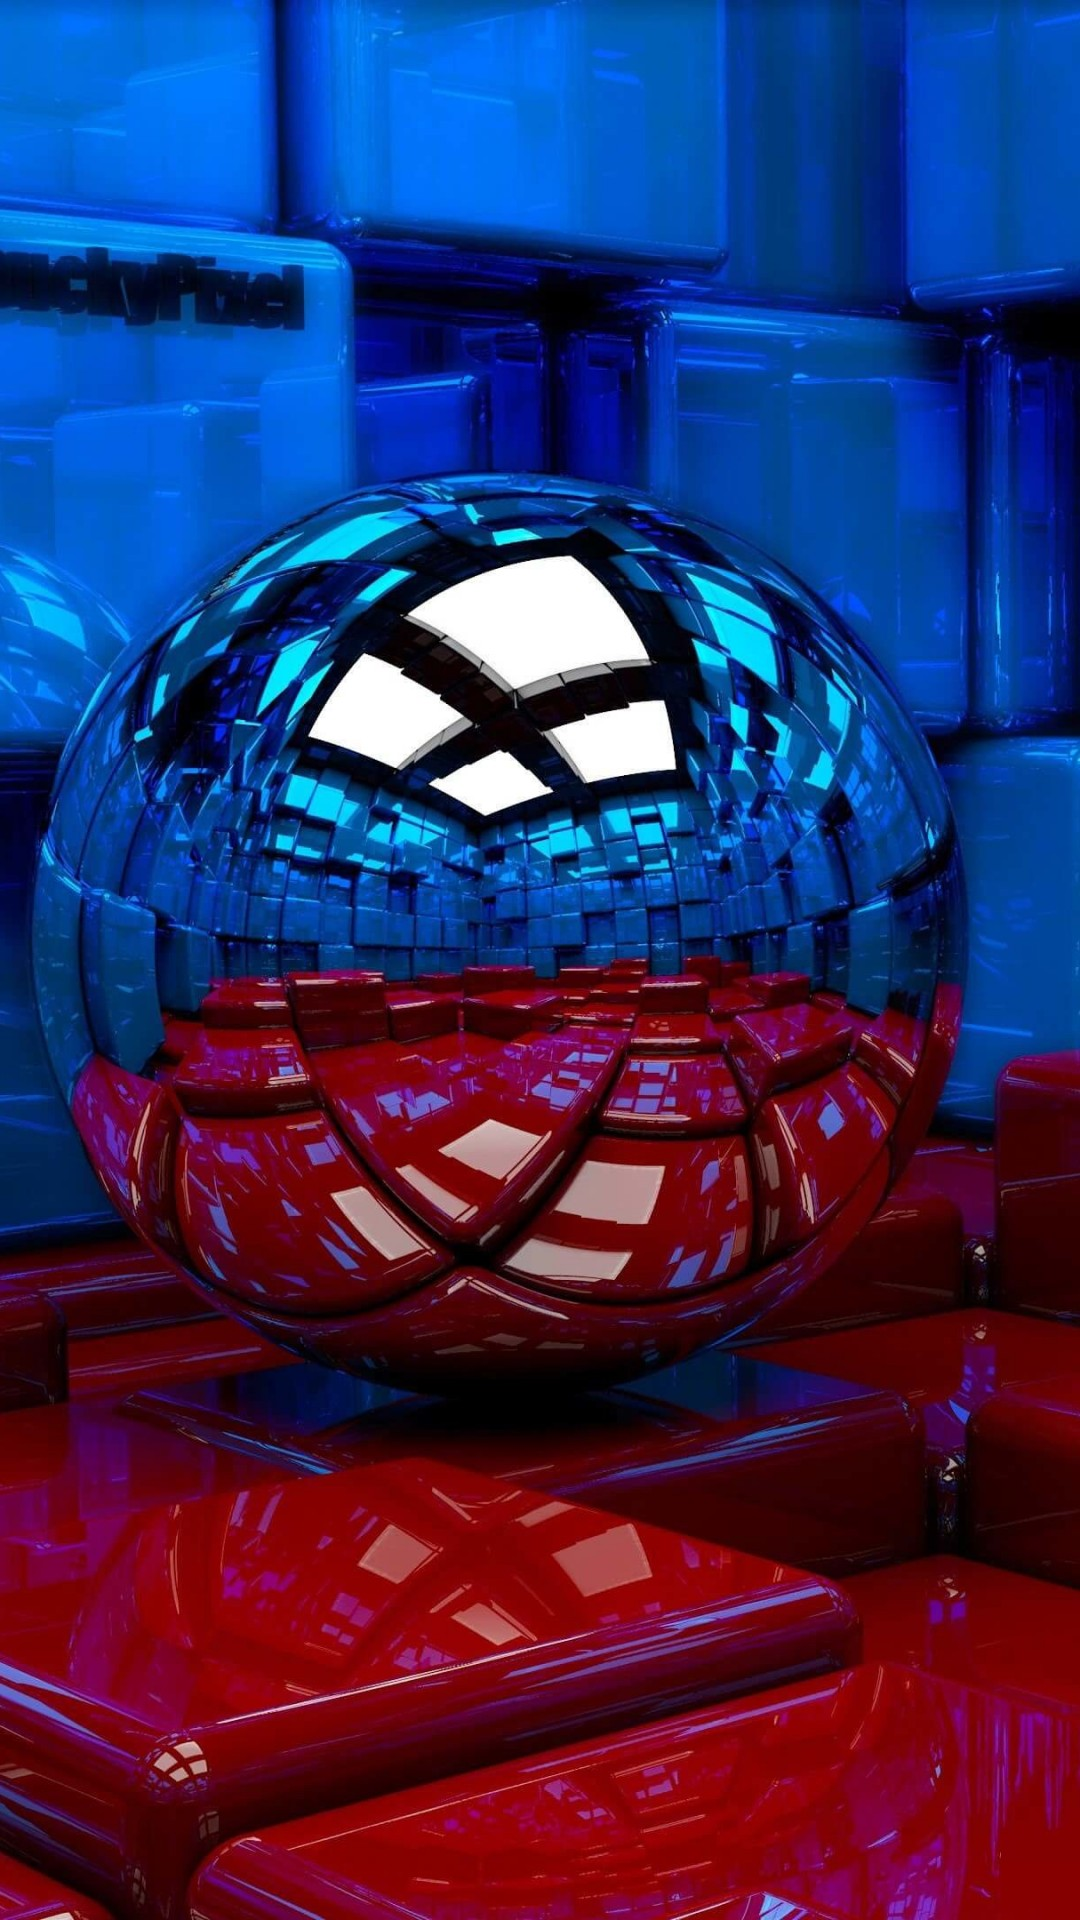 Metallic Sphere Reflecting The Cube Room Wallpaper for Motorola Moto X